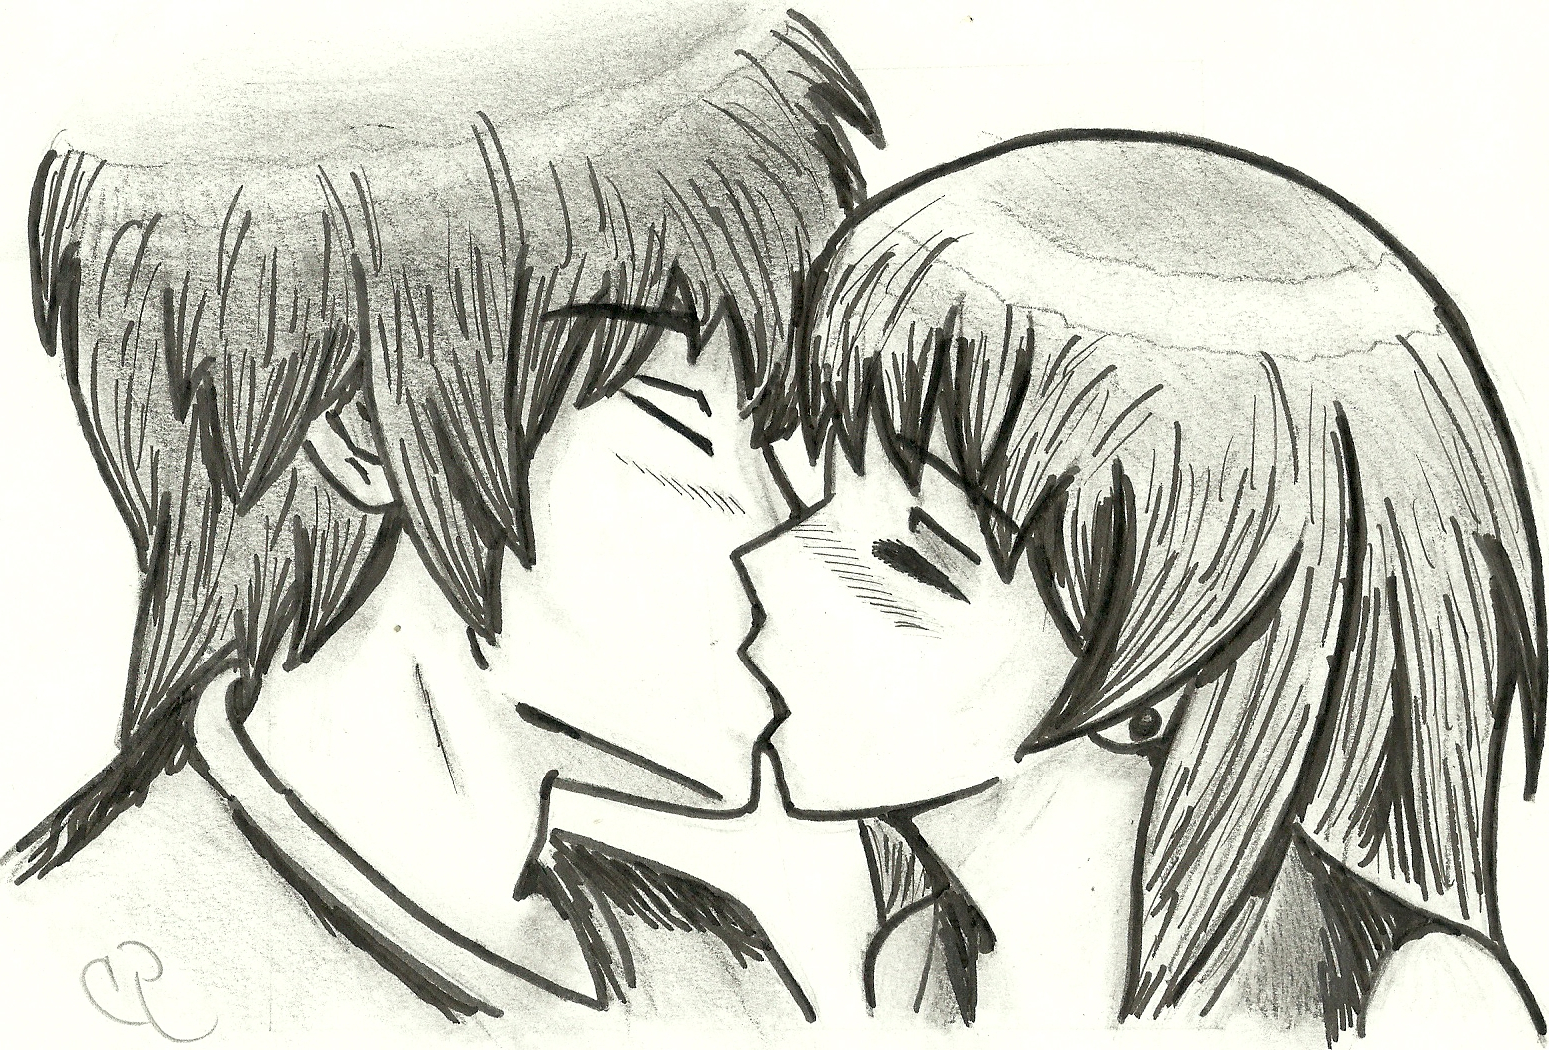 1549x1050 Drawings About 2 People In Love Manga 2 People Kissing By